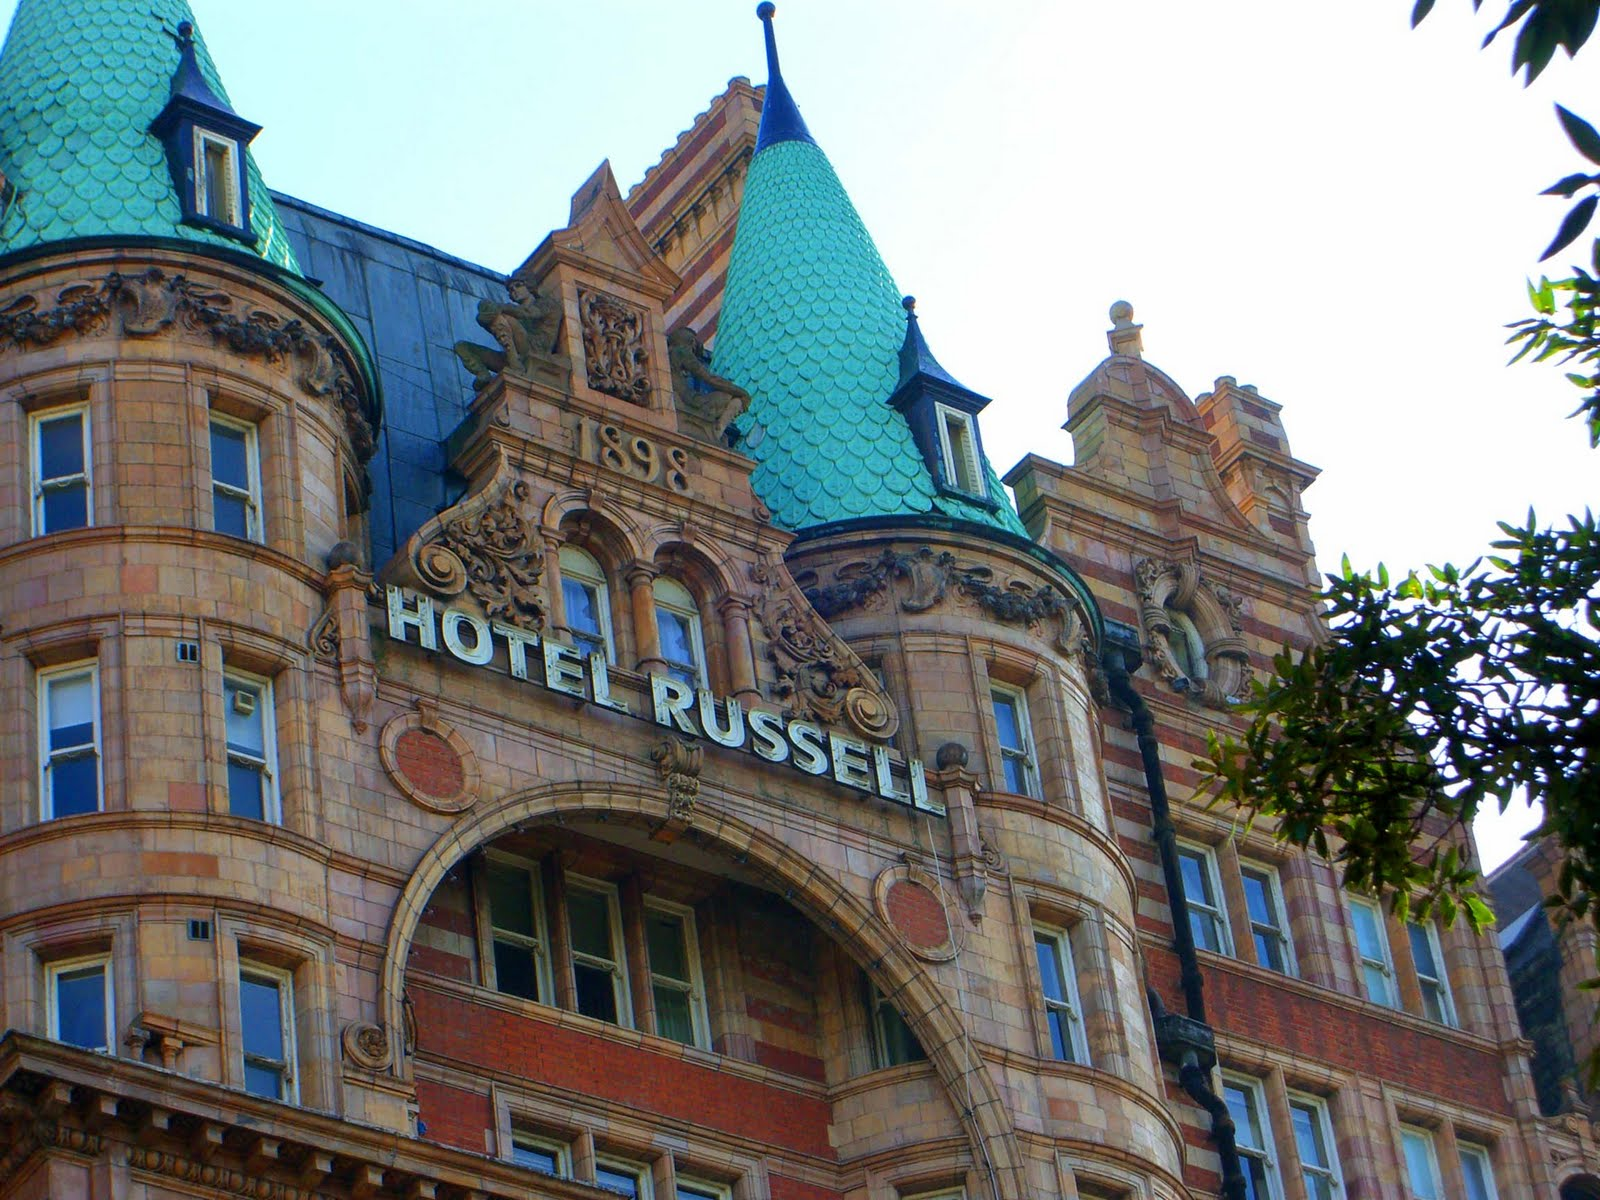 Hotel russell london for Hotels ussel